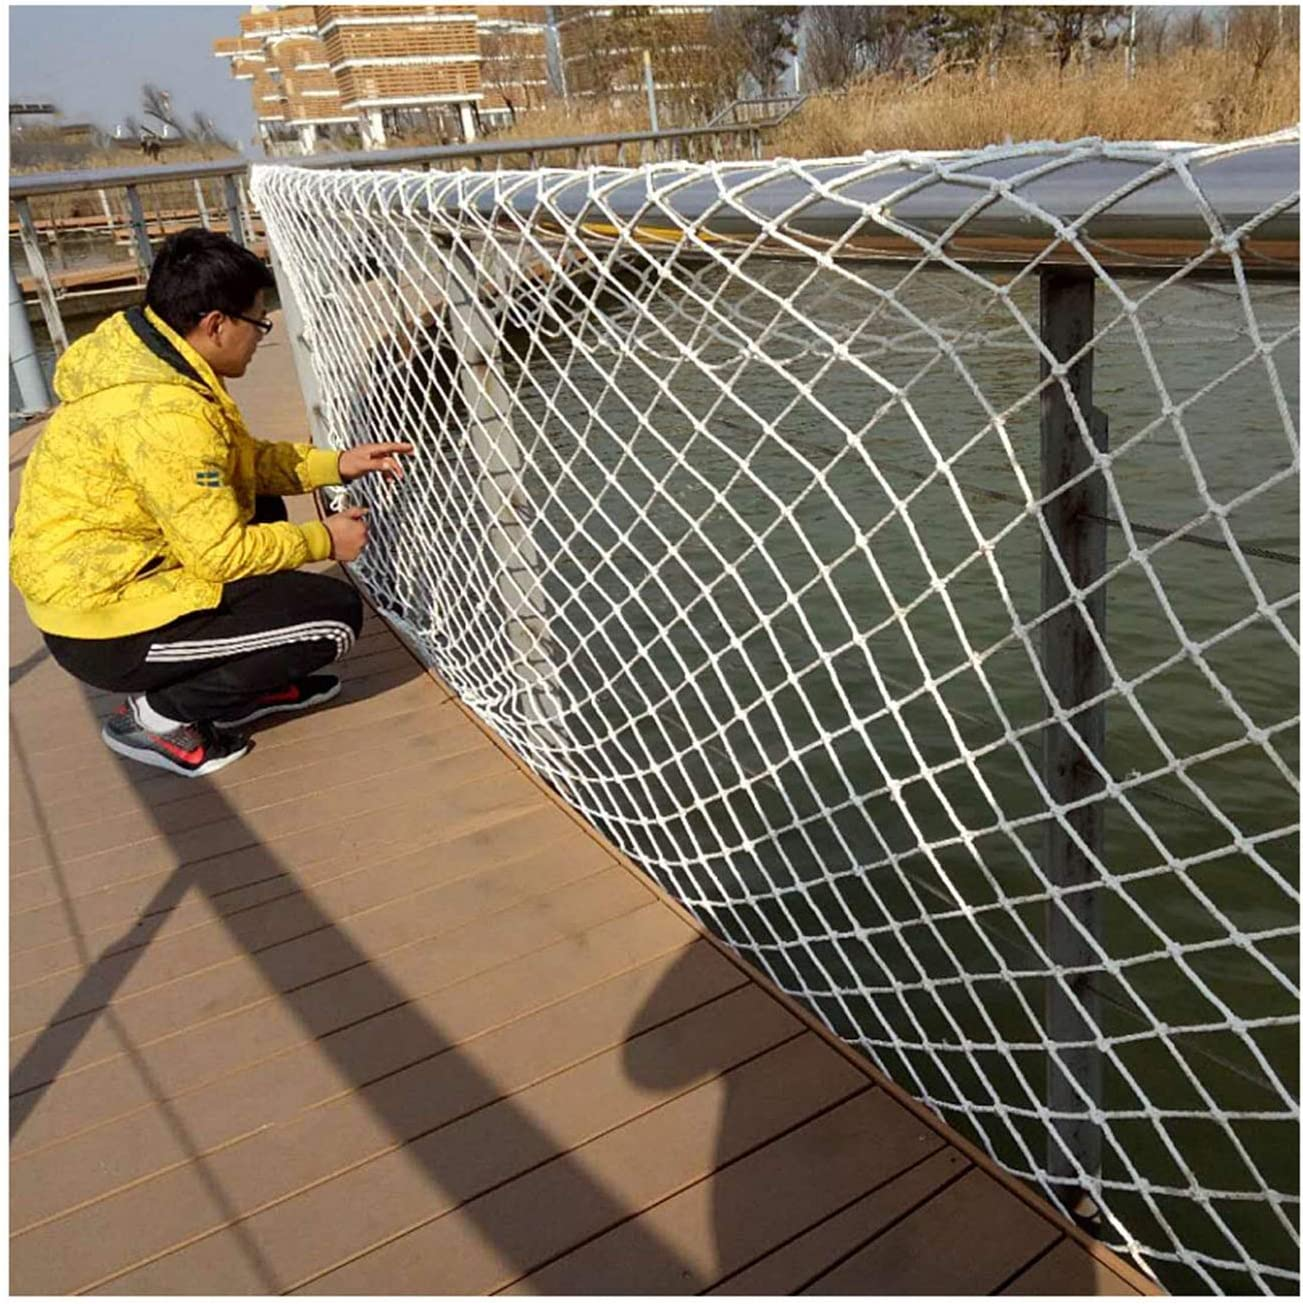 LJIANW Fishing Net Decor Child Guards for Banister S sale Ranking TOP10 Safety